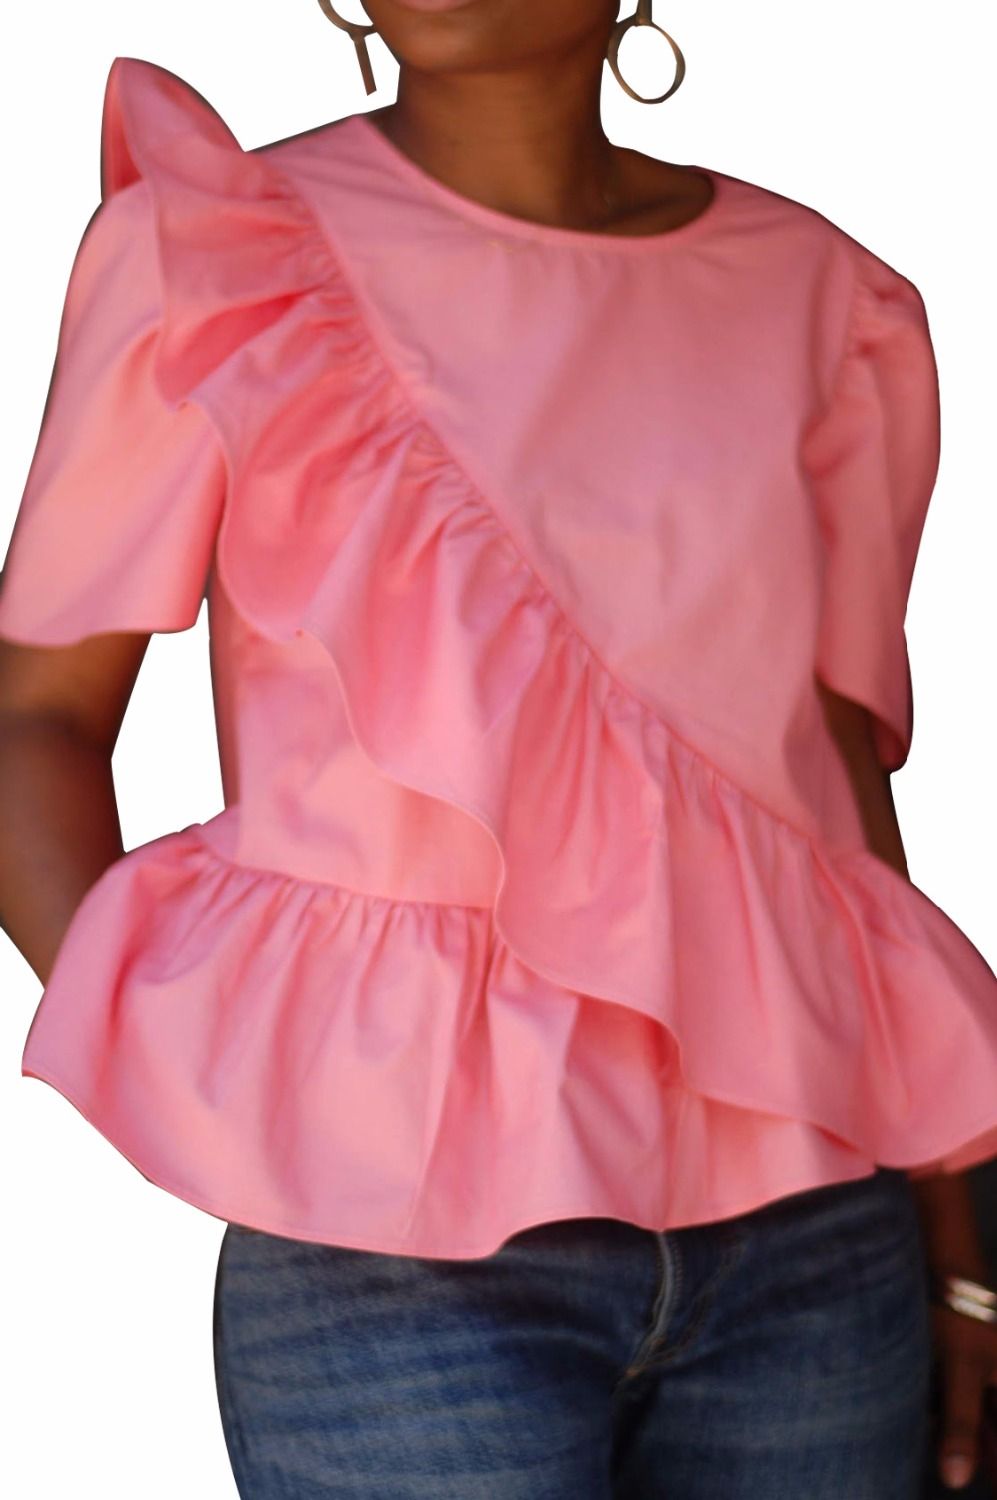 2018 New Short Sleeve Ruffles Tops Solid Women   Blouses     Shirts   Red White Pink